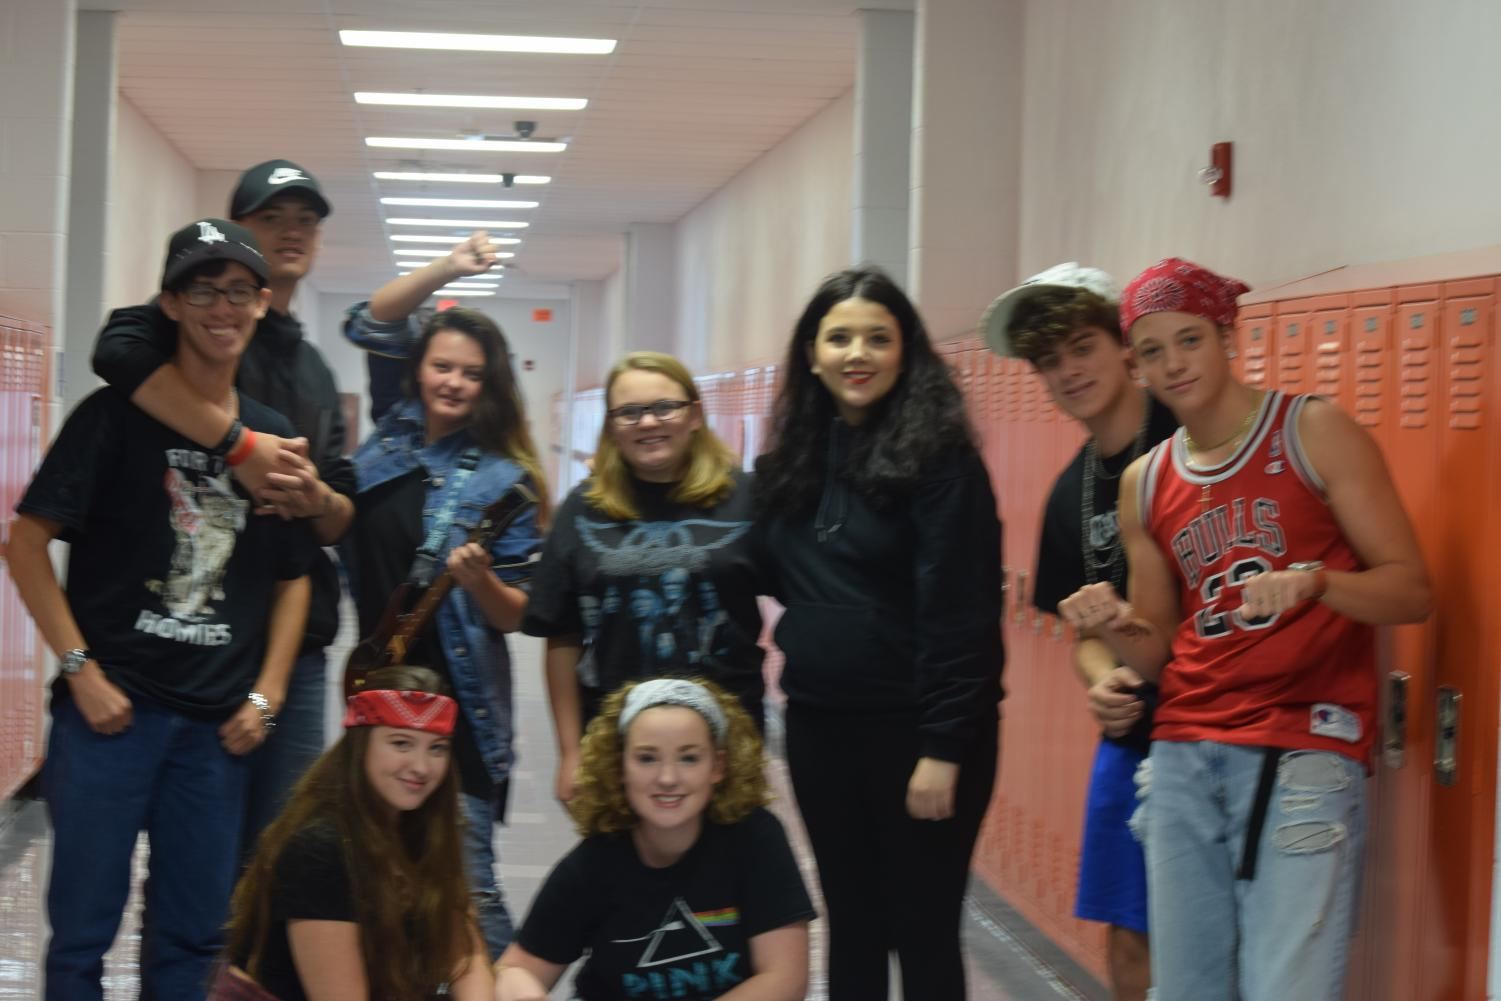 HHS+students+pose+in+the+hallway+showing+their+tiger+spirit.+